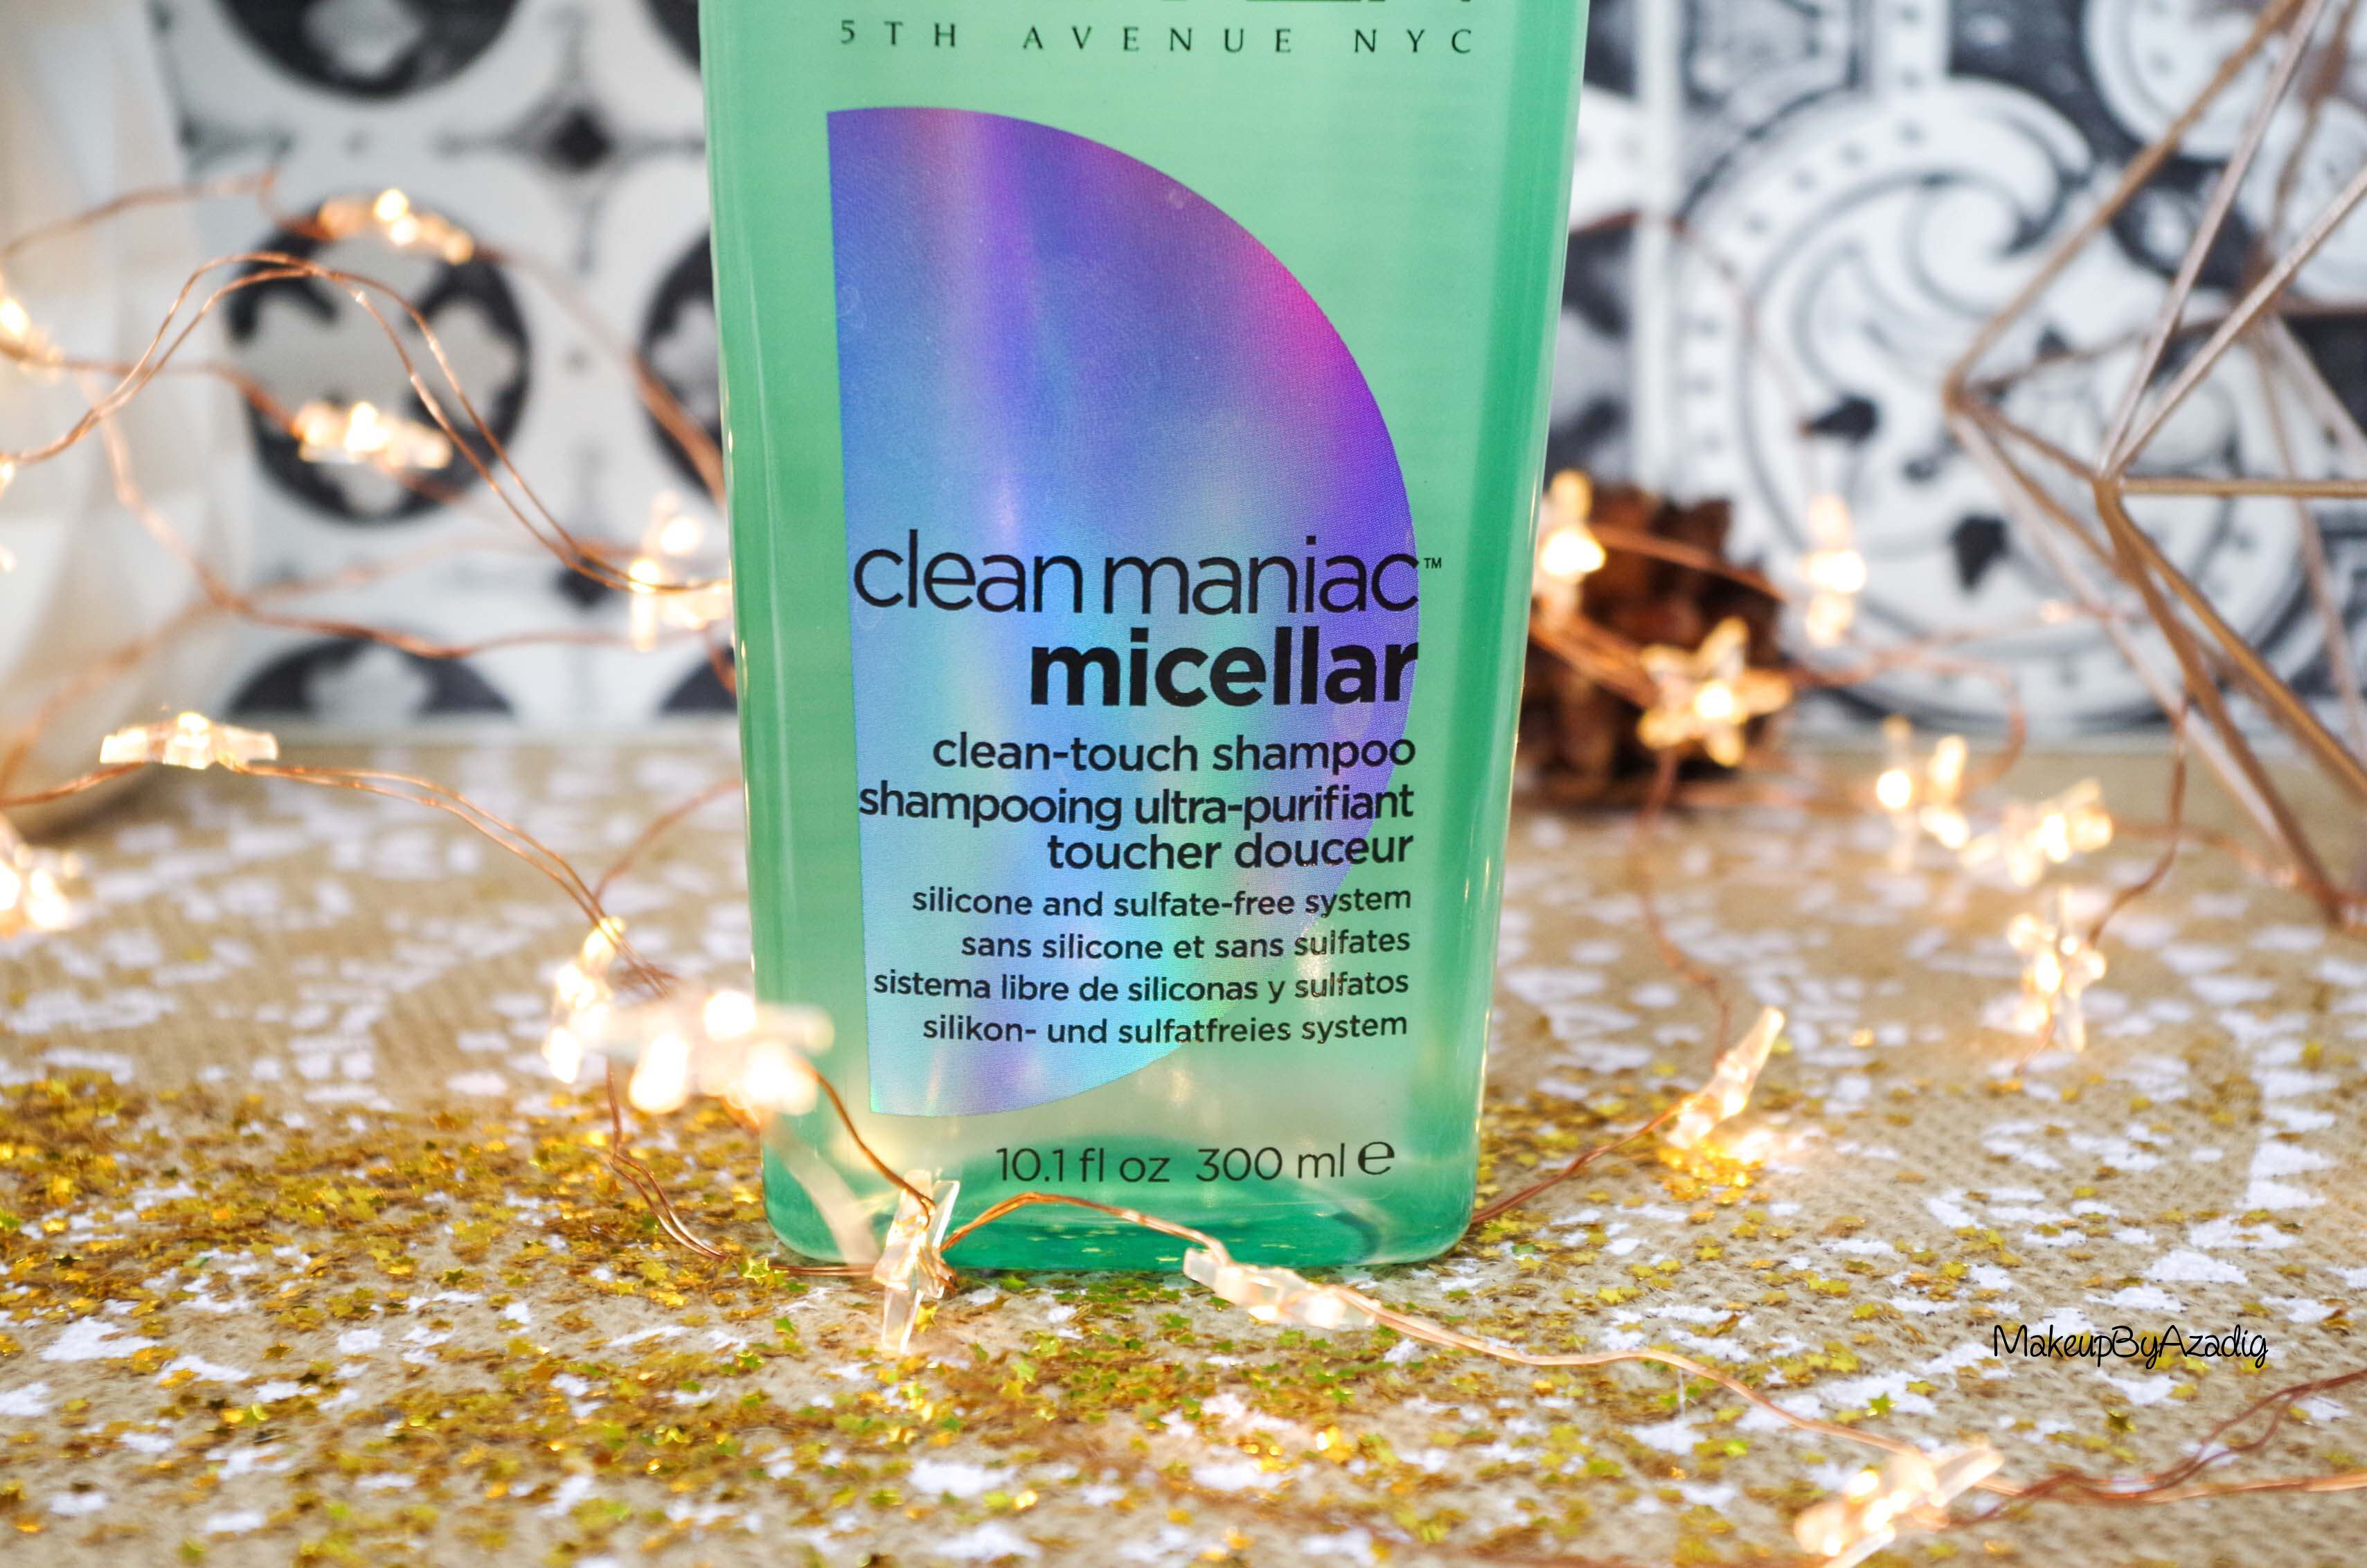 revue-shampooing-conditioner-clean-maniac-redken-programme-detox-anti-pollution-makeupbyazadig-cleanhair-sans-silicone-sulfate-micellaire